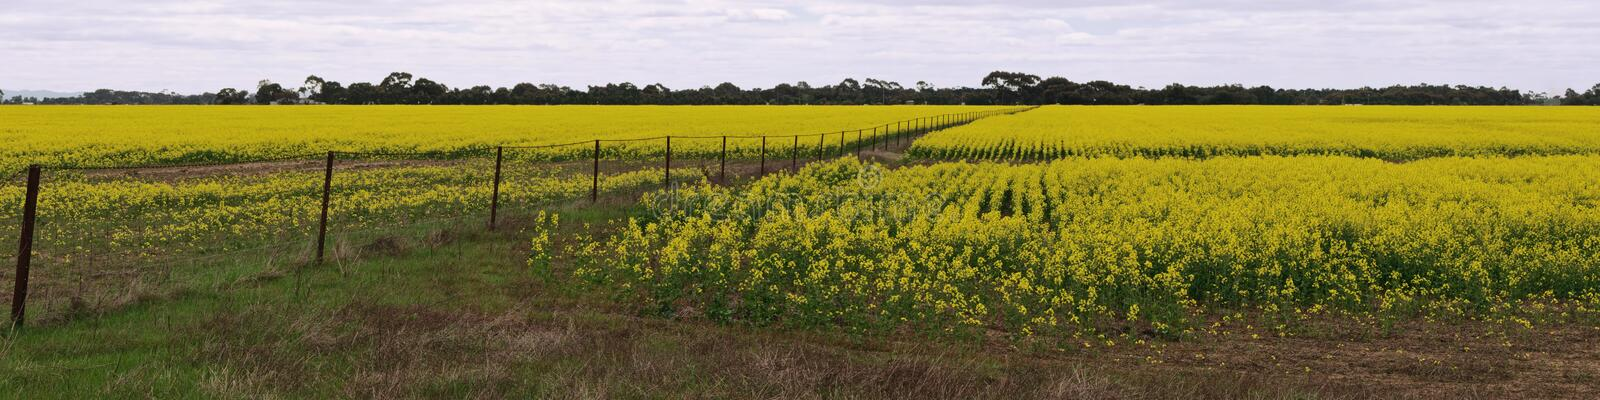 Download Canola field panorama stock image. Image of field, canola - 26714725